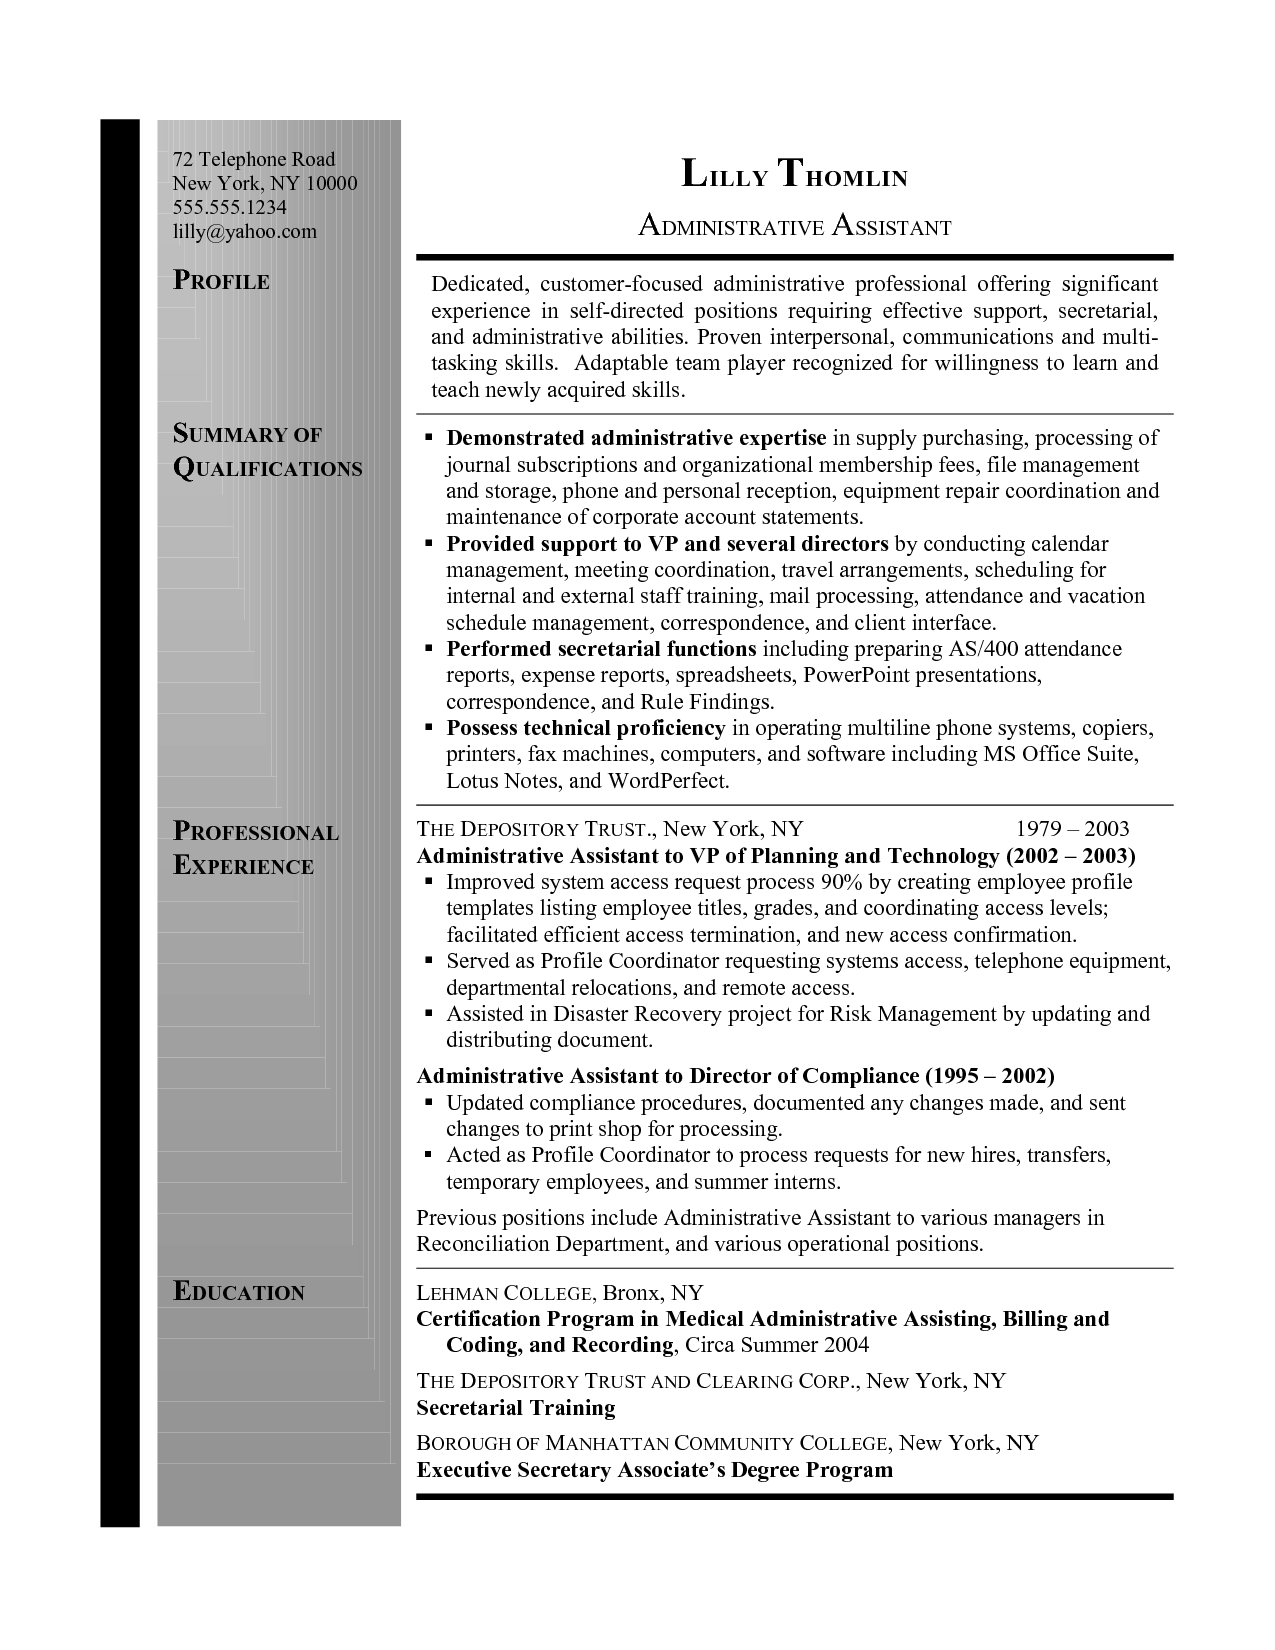 Perfect Resume Summary Administrative Assistant